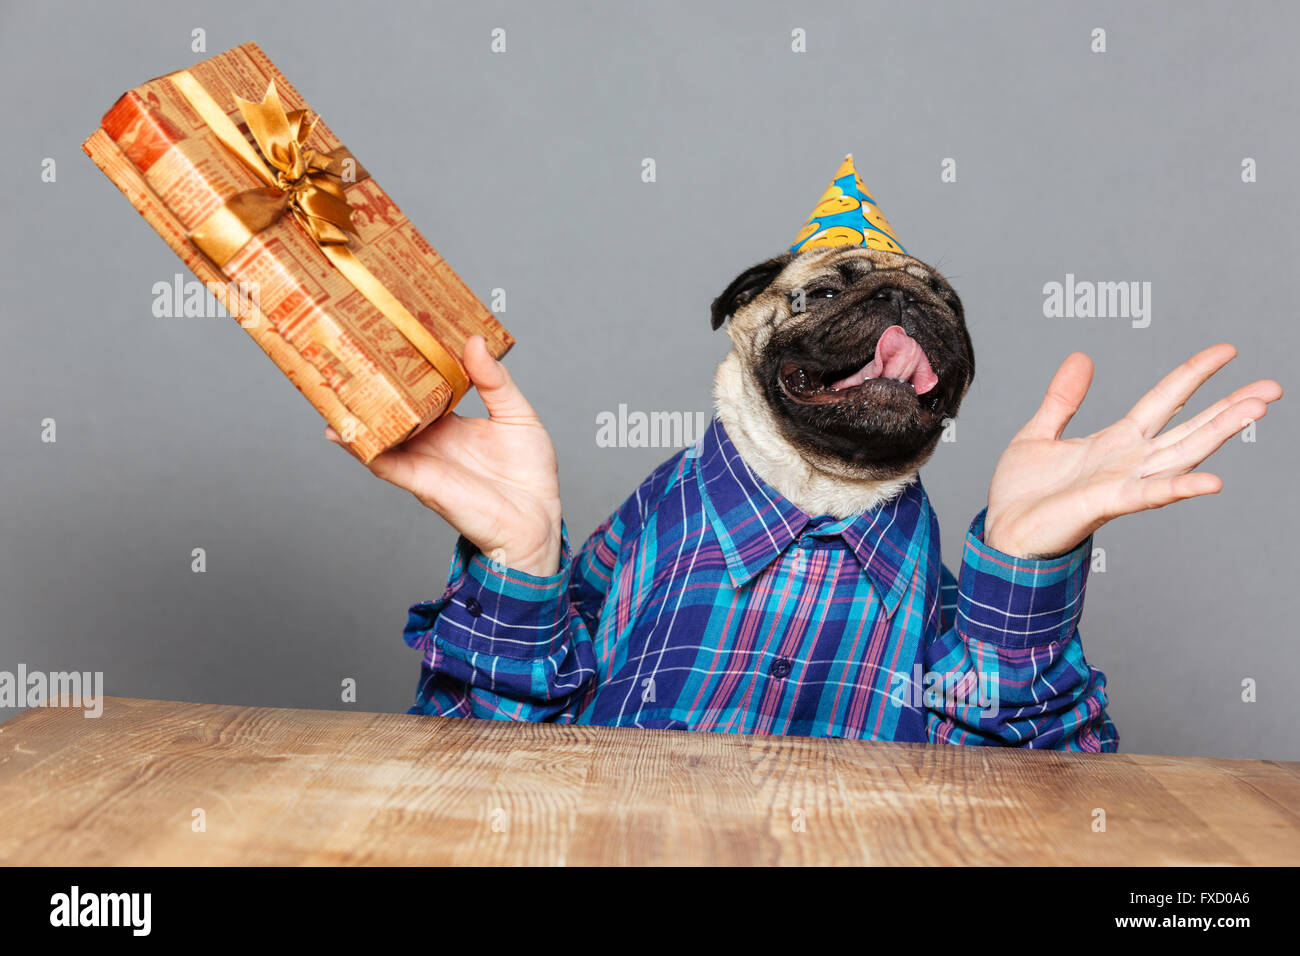 Excited happy pug dog with man hands in checkered shirt and birthday hat with gift over grey background - Stock Image